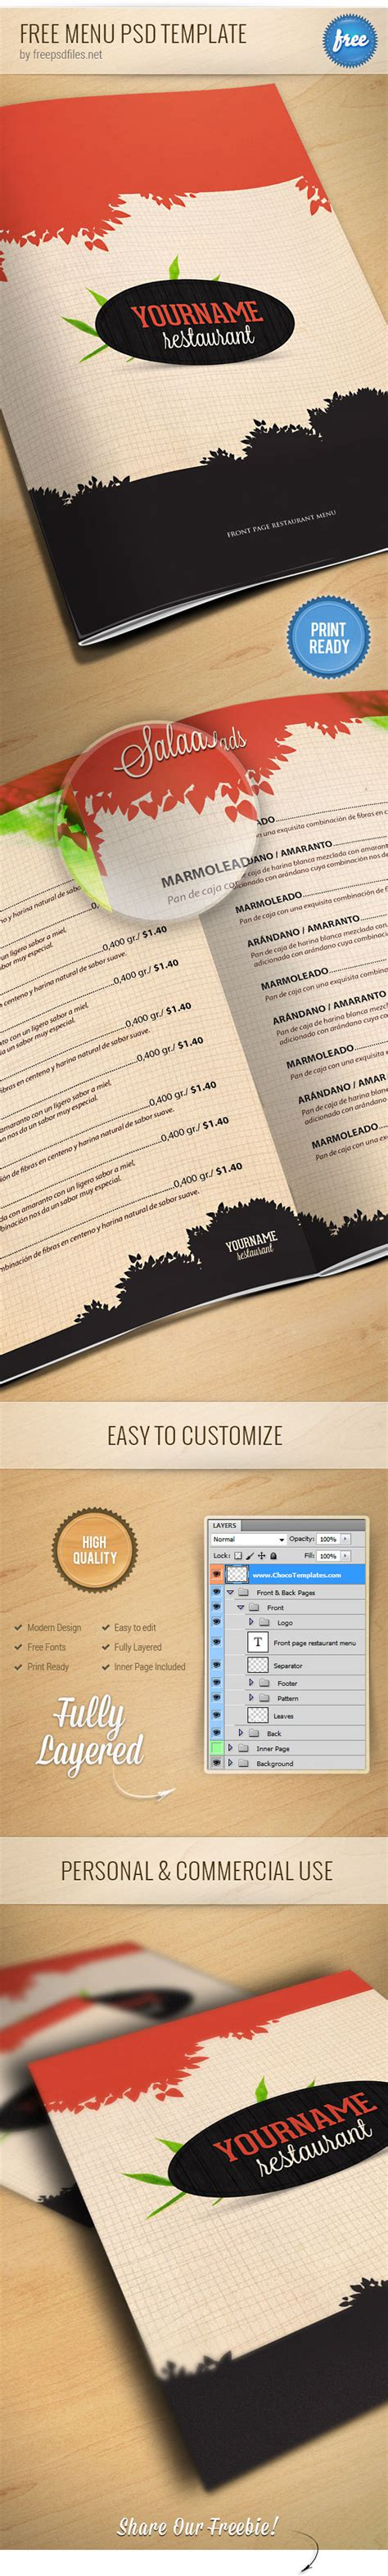 restaurant menu psd template free psd files